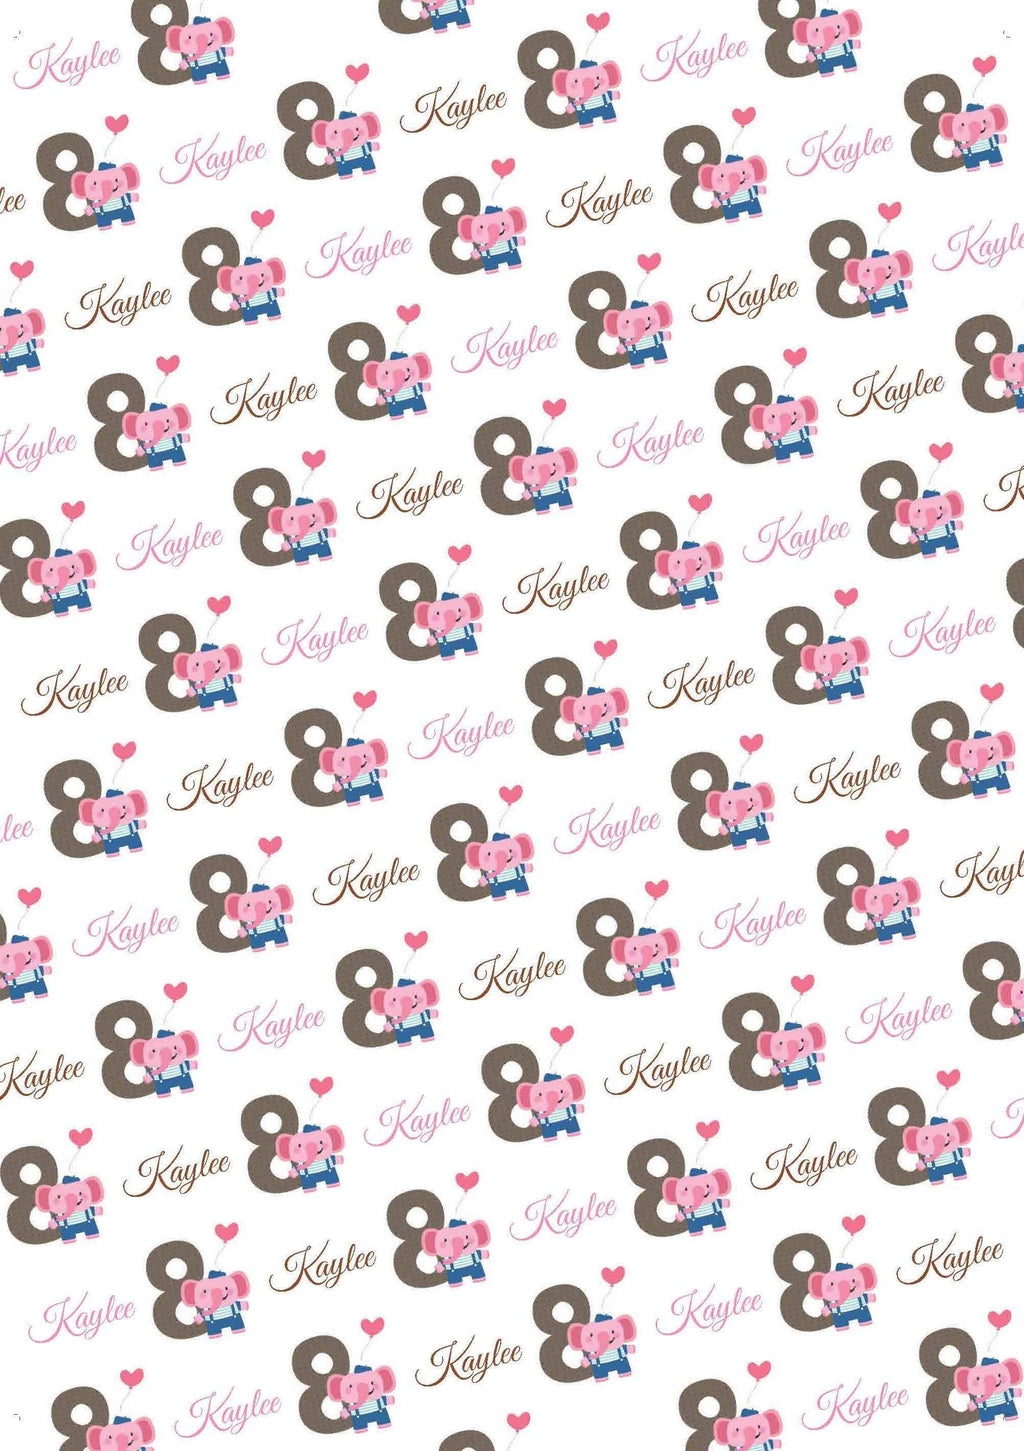 8th Birthday Elephant Personalized Birthday Tissue Paper - Potter's Printing